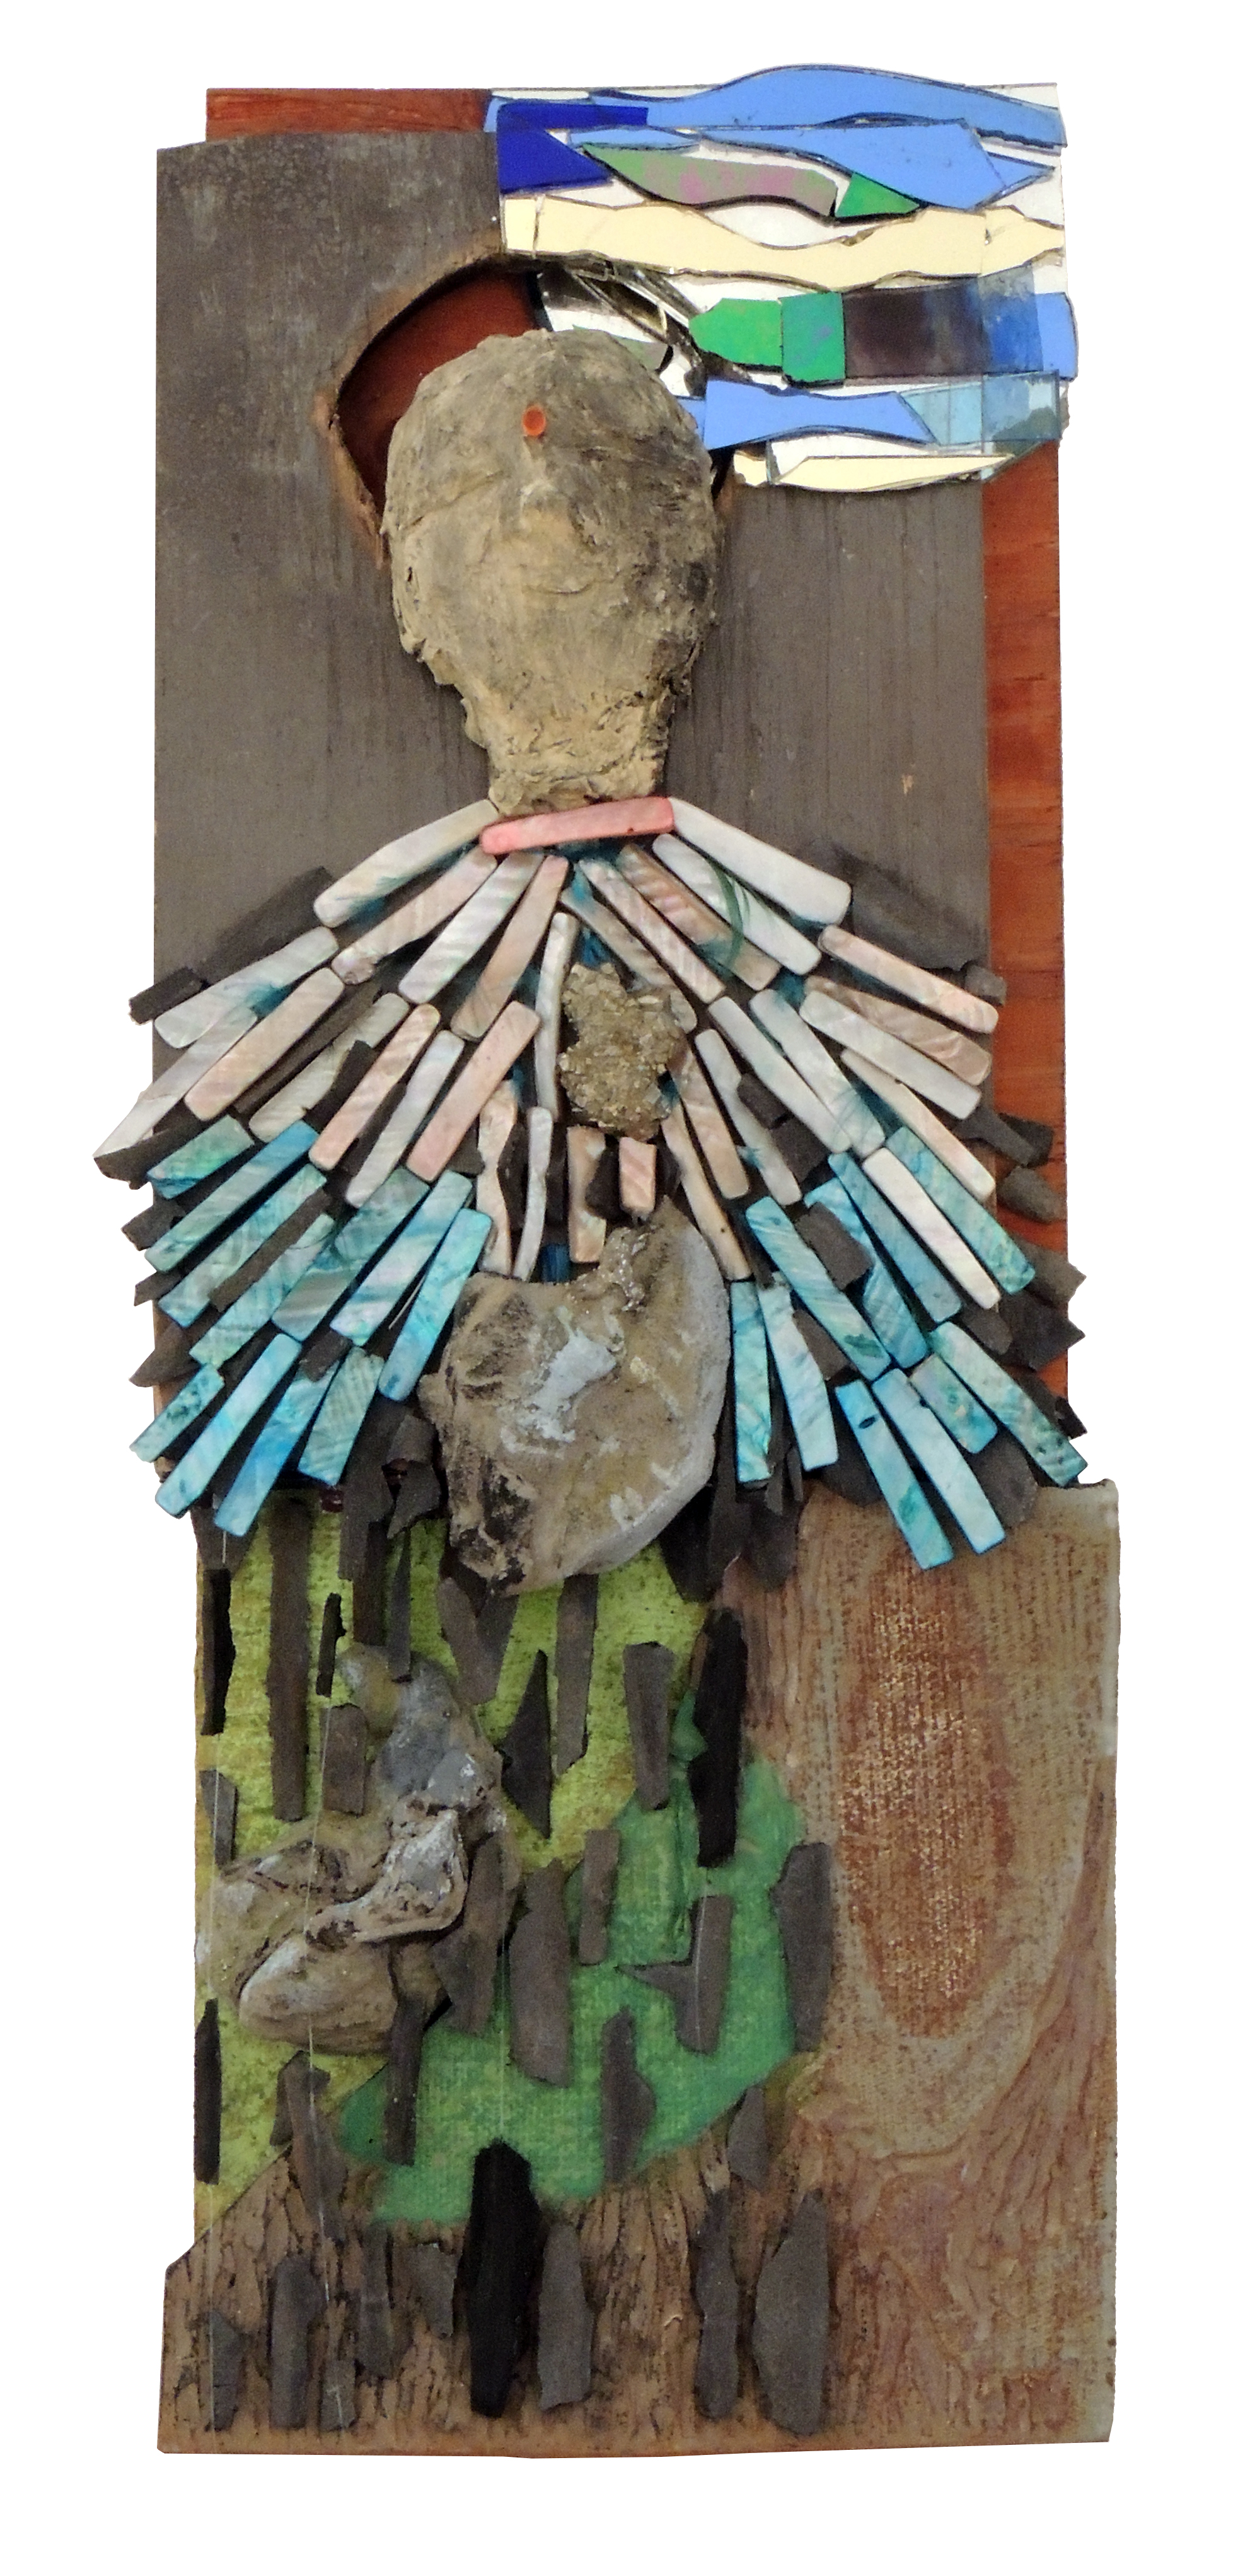 Robin Hastings | BOUND FOR HOME | Mixed media – found, acquired, and created objects